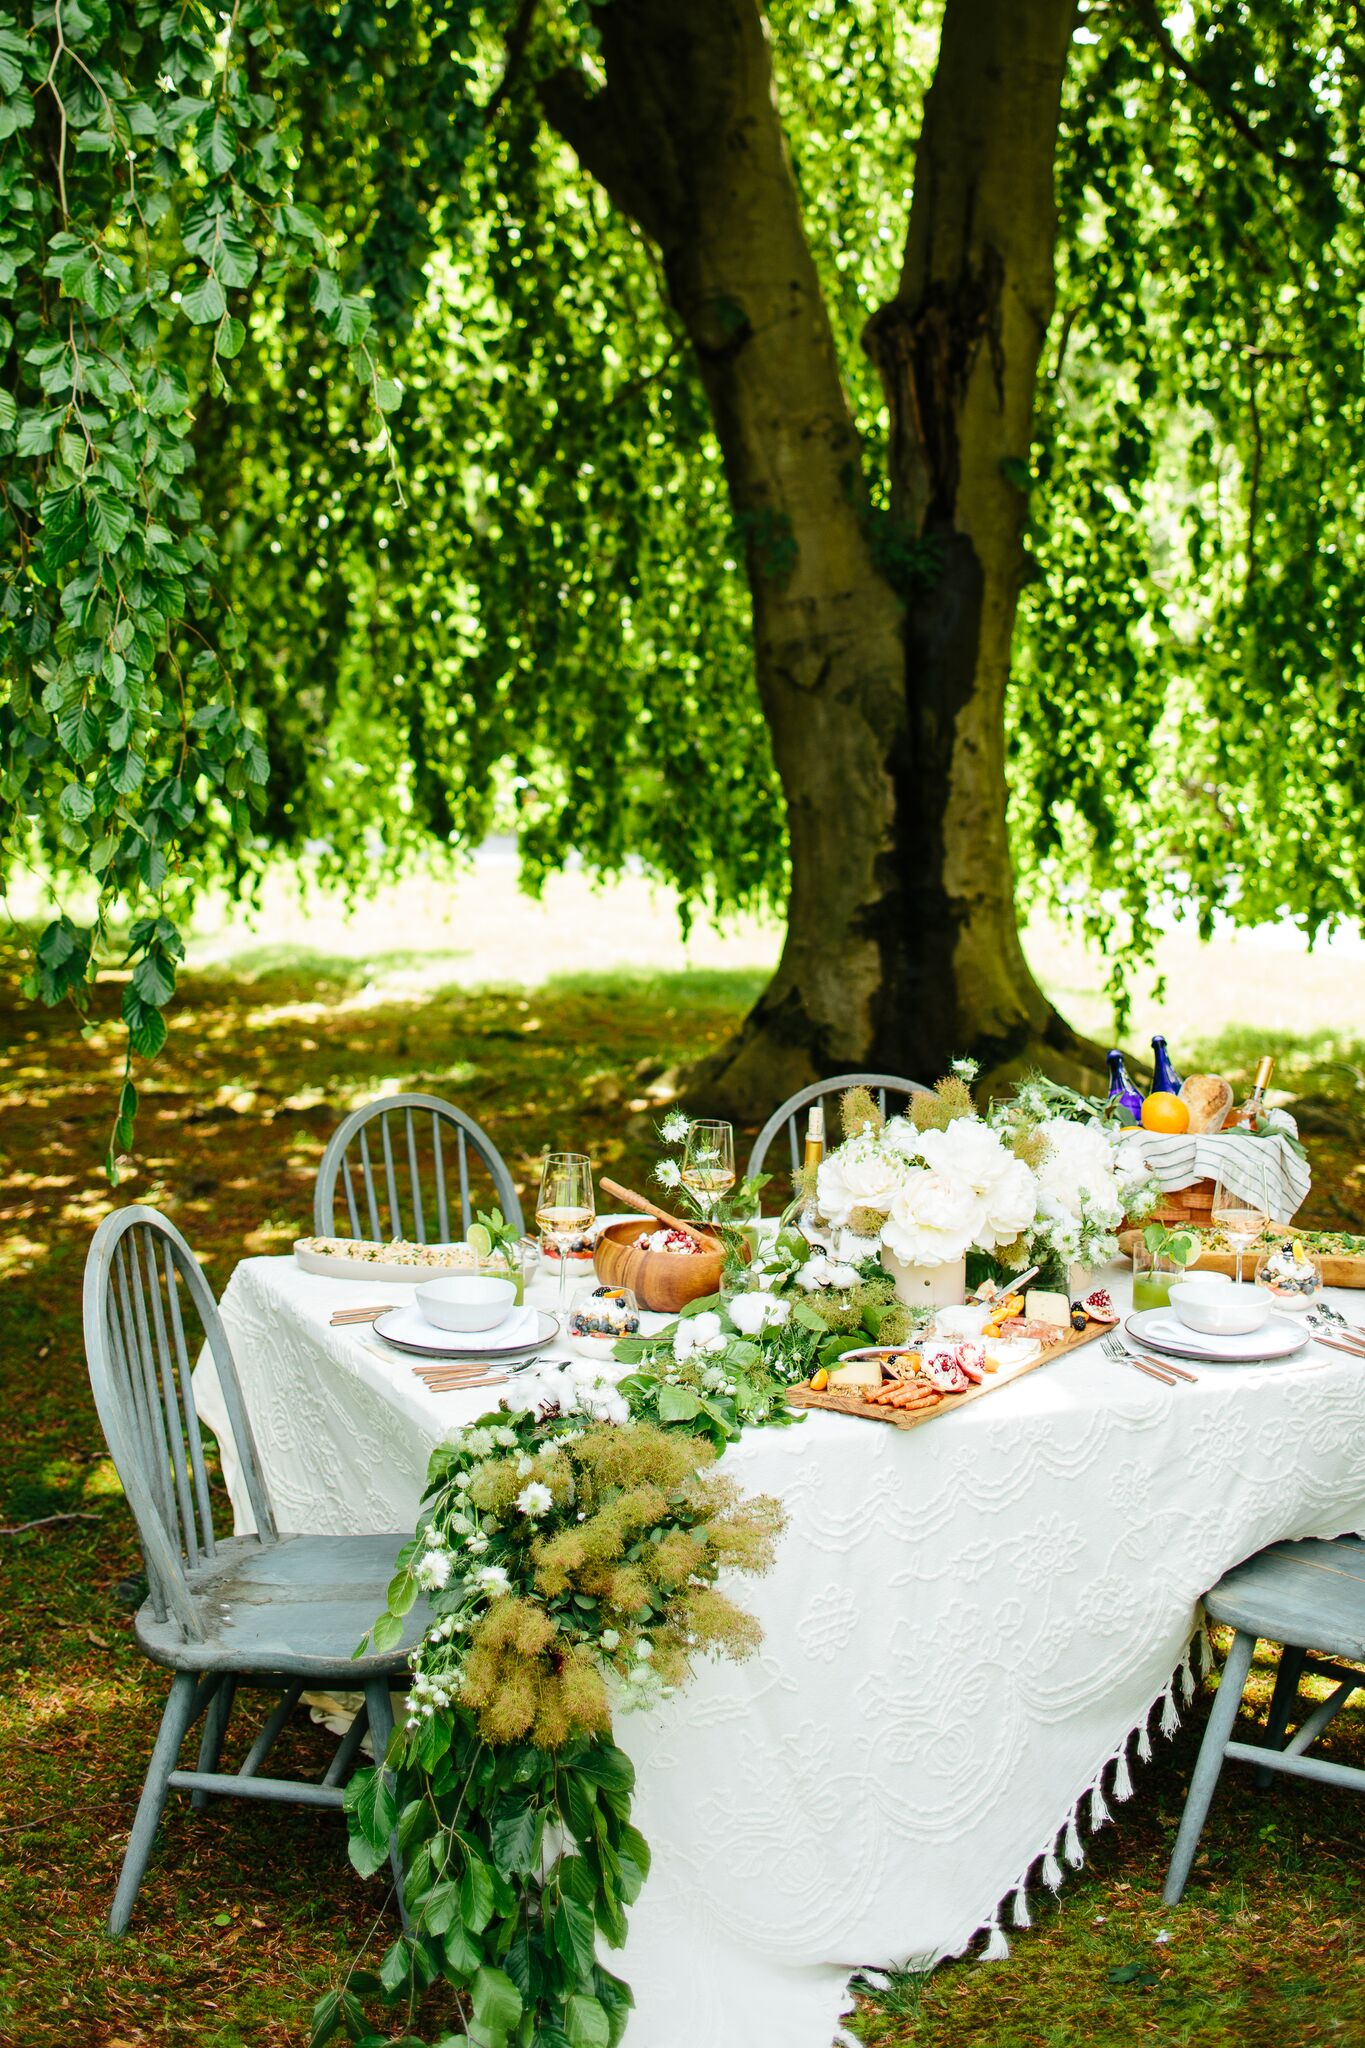 Picnic Under a Willow